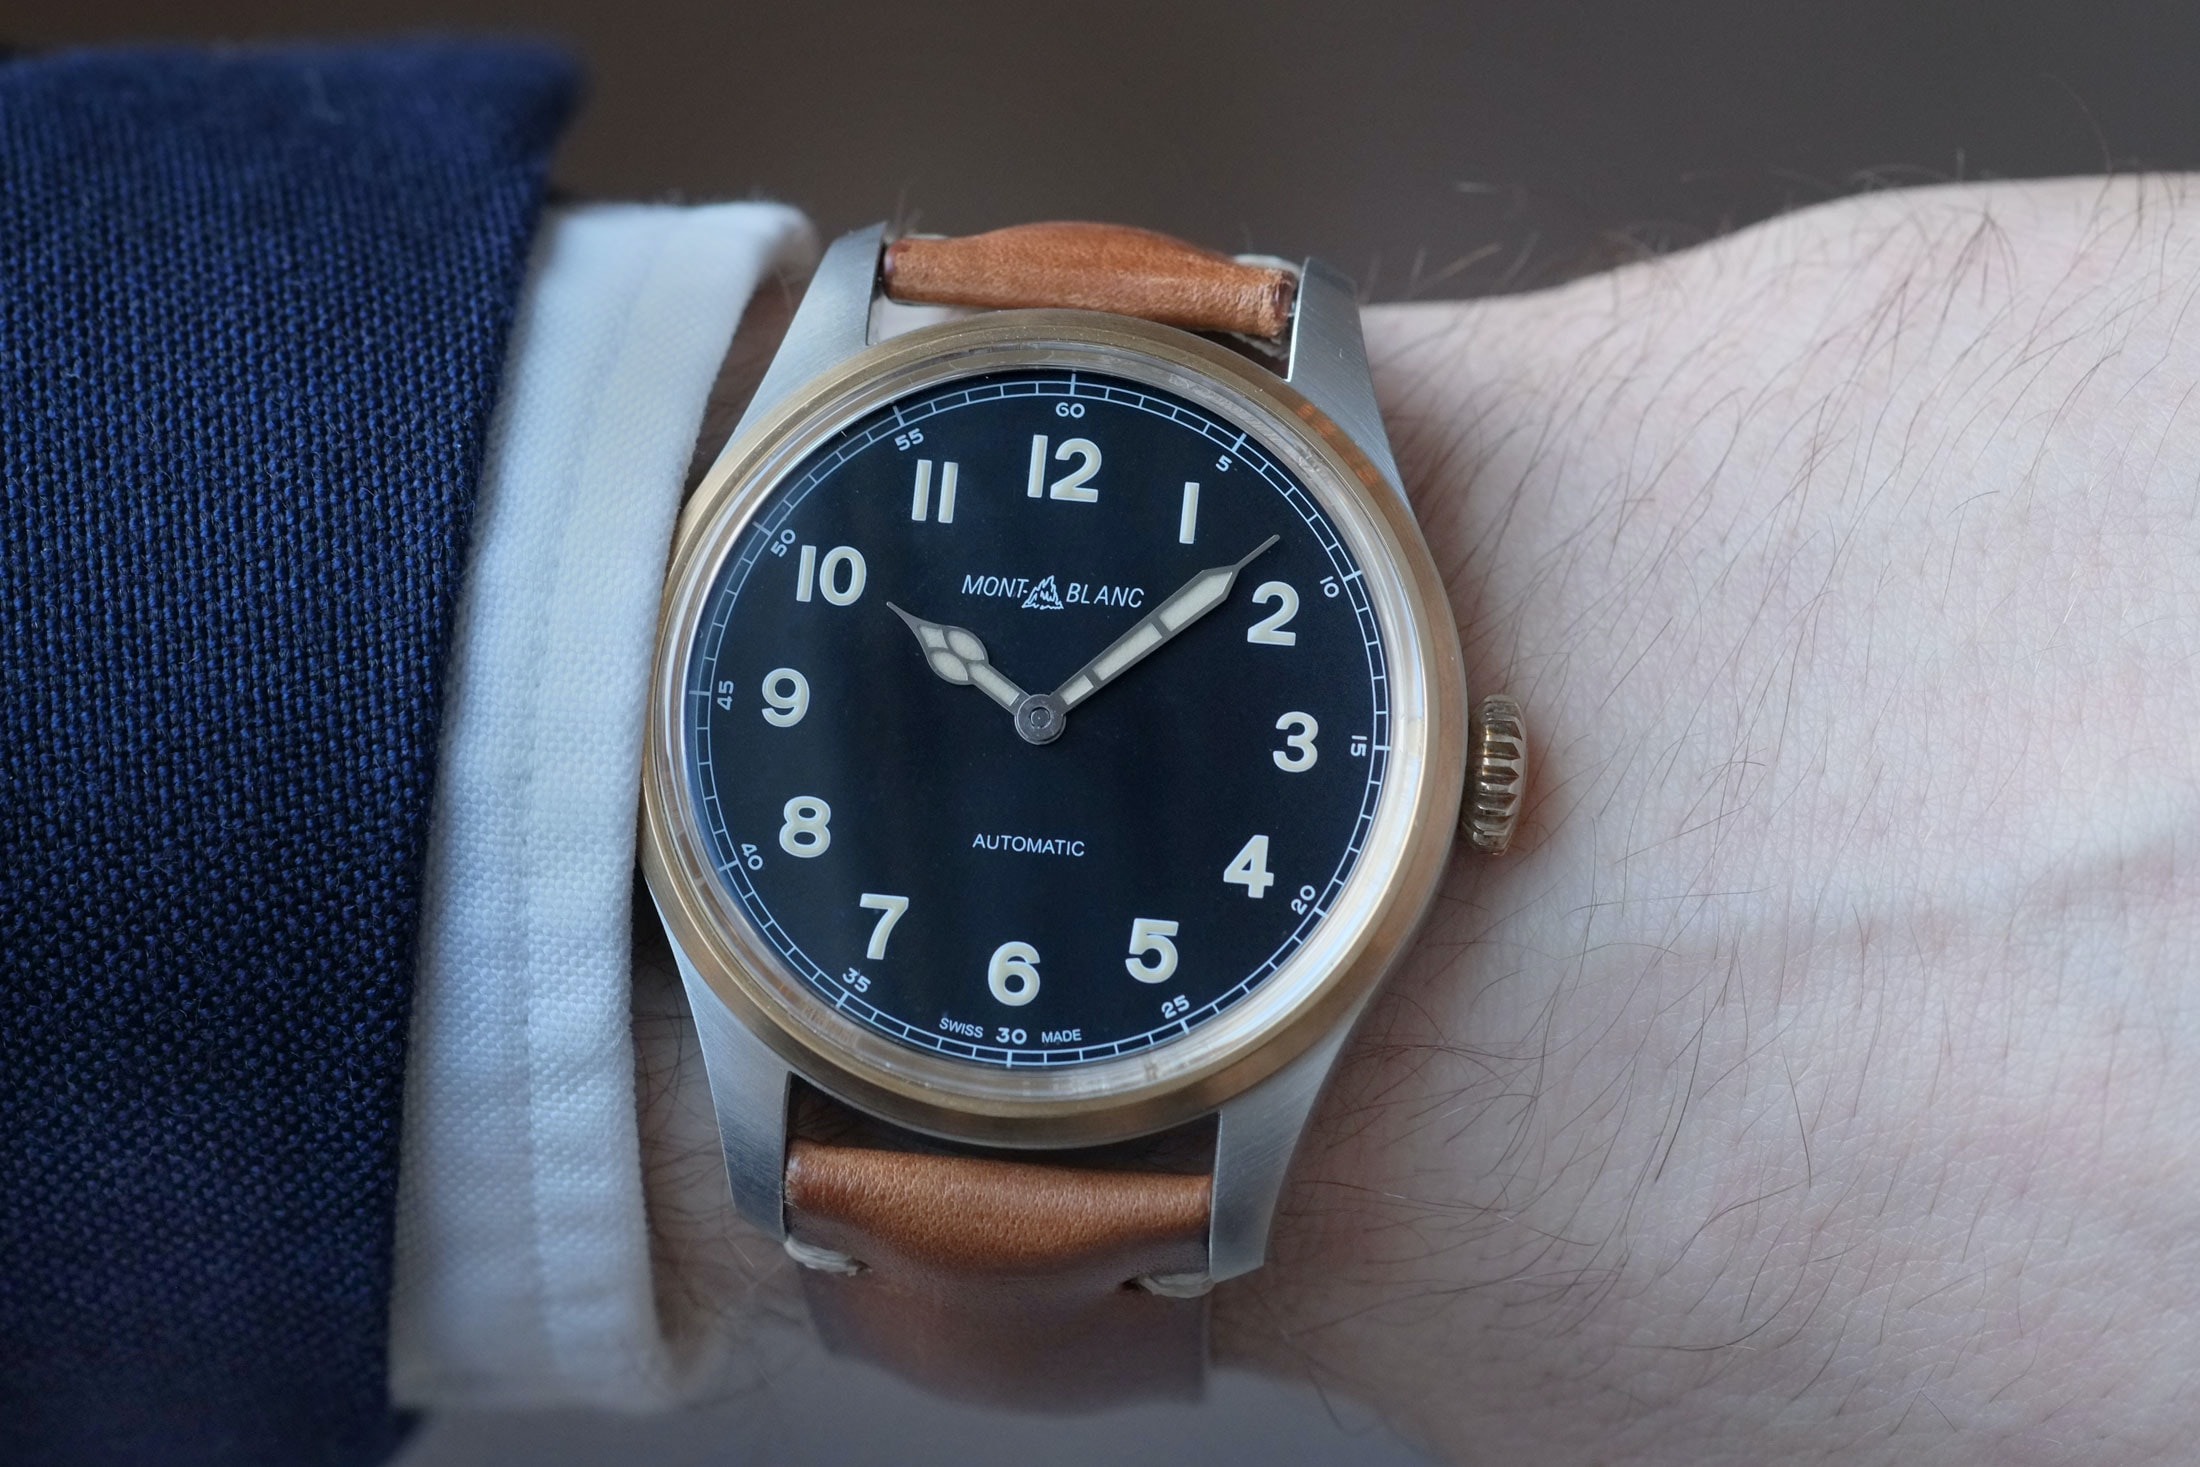 1858 automatic montblanc wristshot Introducing: The Montblanc 1858 Automatic And 1858 Automatic Dual Time, Two-Tone In Stainless Steel And Bronze (Live Pics & Pricing) Introducing: The Montblanc 1858 Automatic And 1858 Automatic Dual Time, Two-Tone In Stainless Steel And Bronze (Live Pics & Pricing) montblanc 02